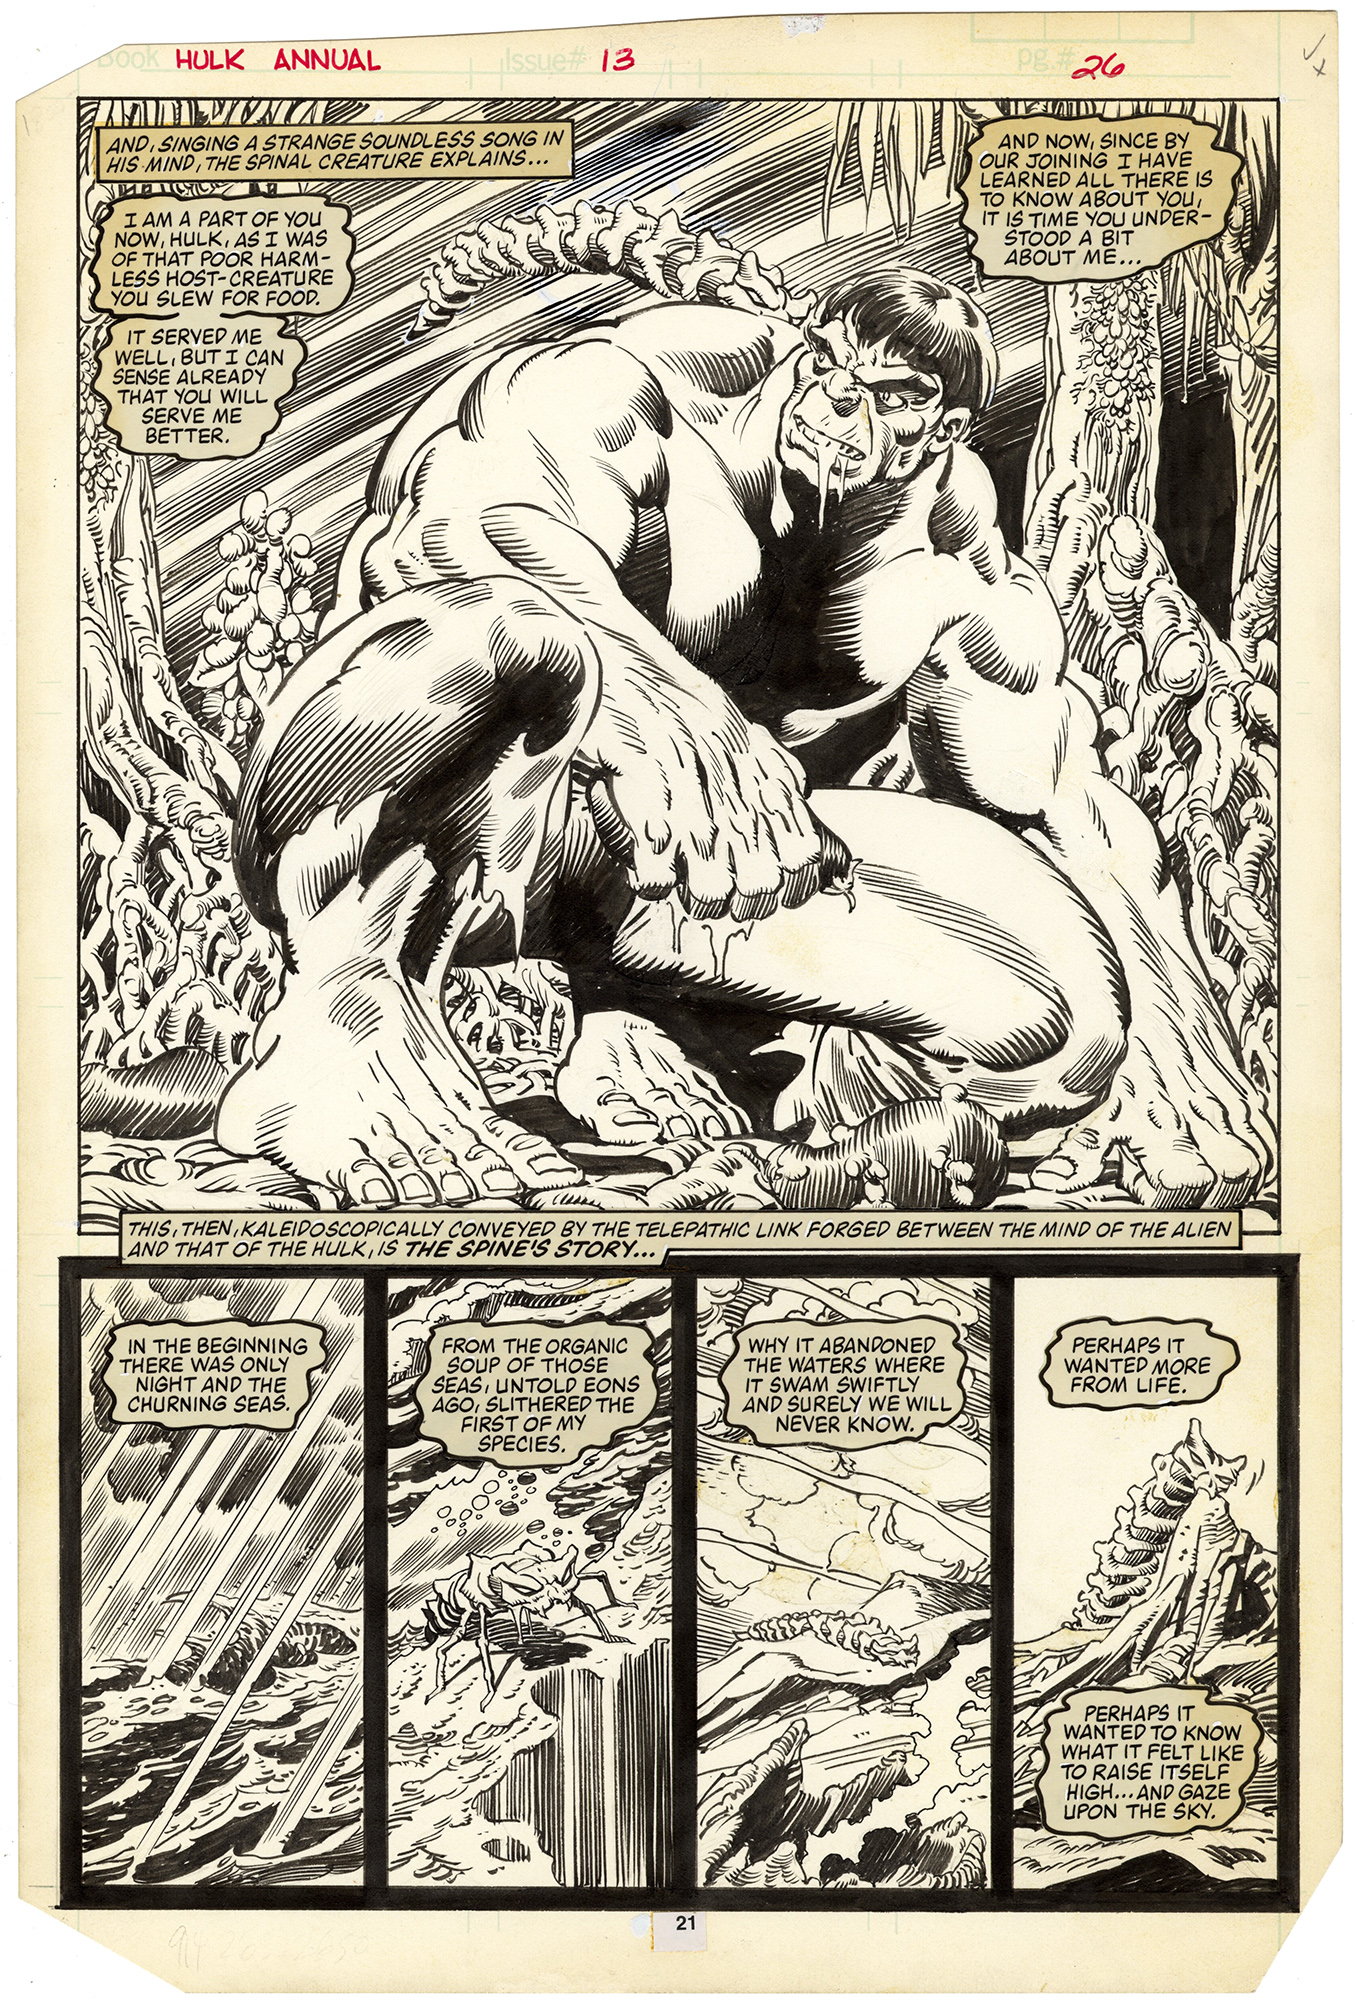 Incredible Hulk Annual #13 p21